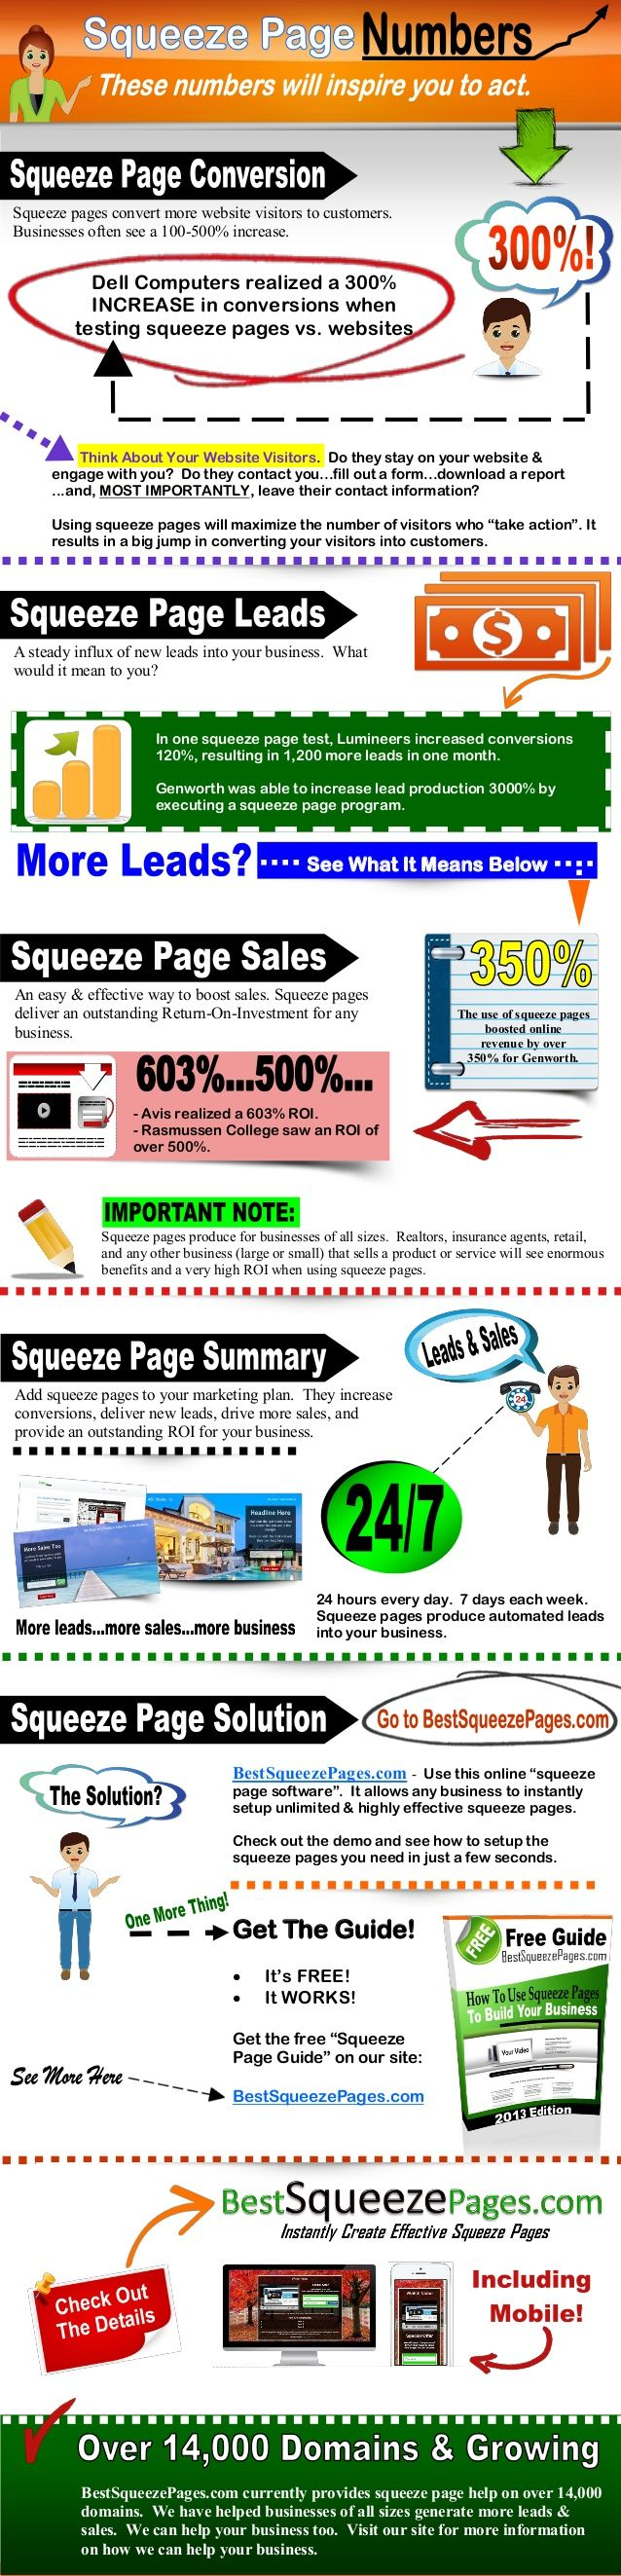 Squeeze Page InfoGraphic from: http://bestsqueezepages.com/squeeze-page-infographic.html #squeezepageinfographic